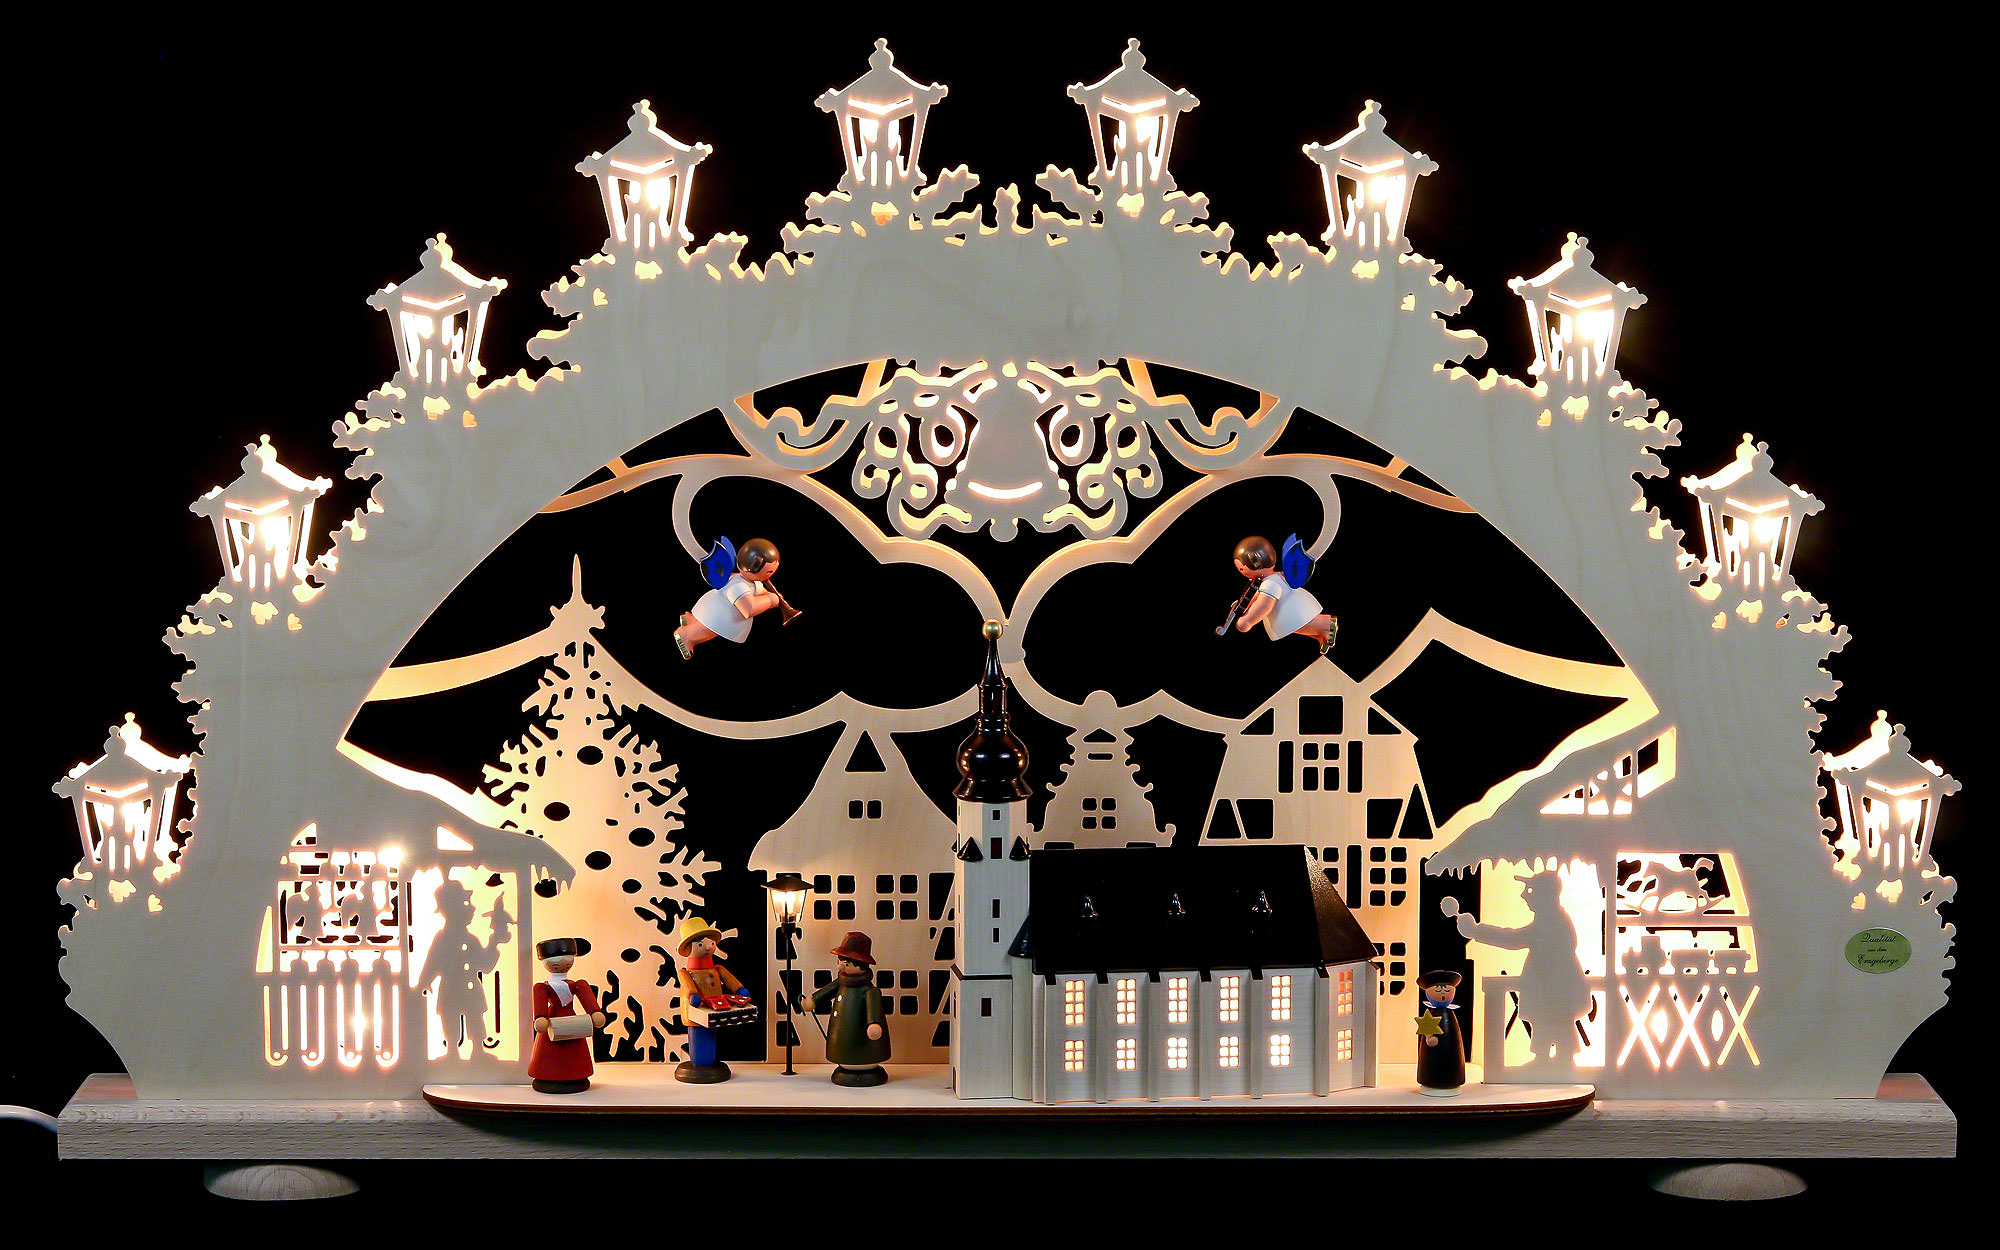 3d light arch old town christmas fair 664011 cm 43 inch